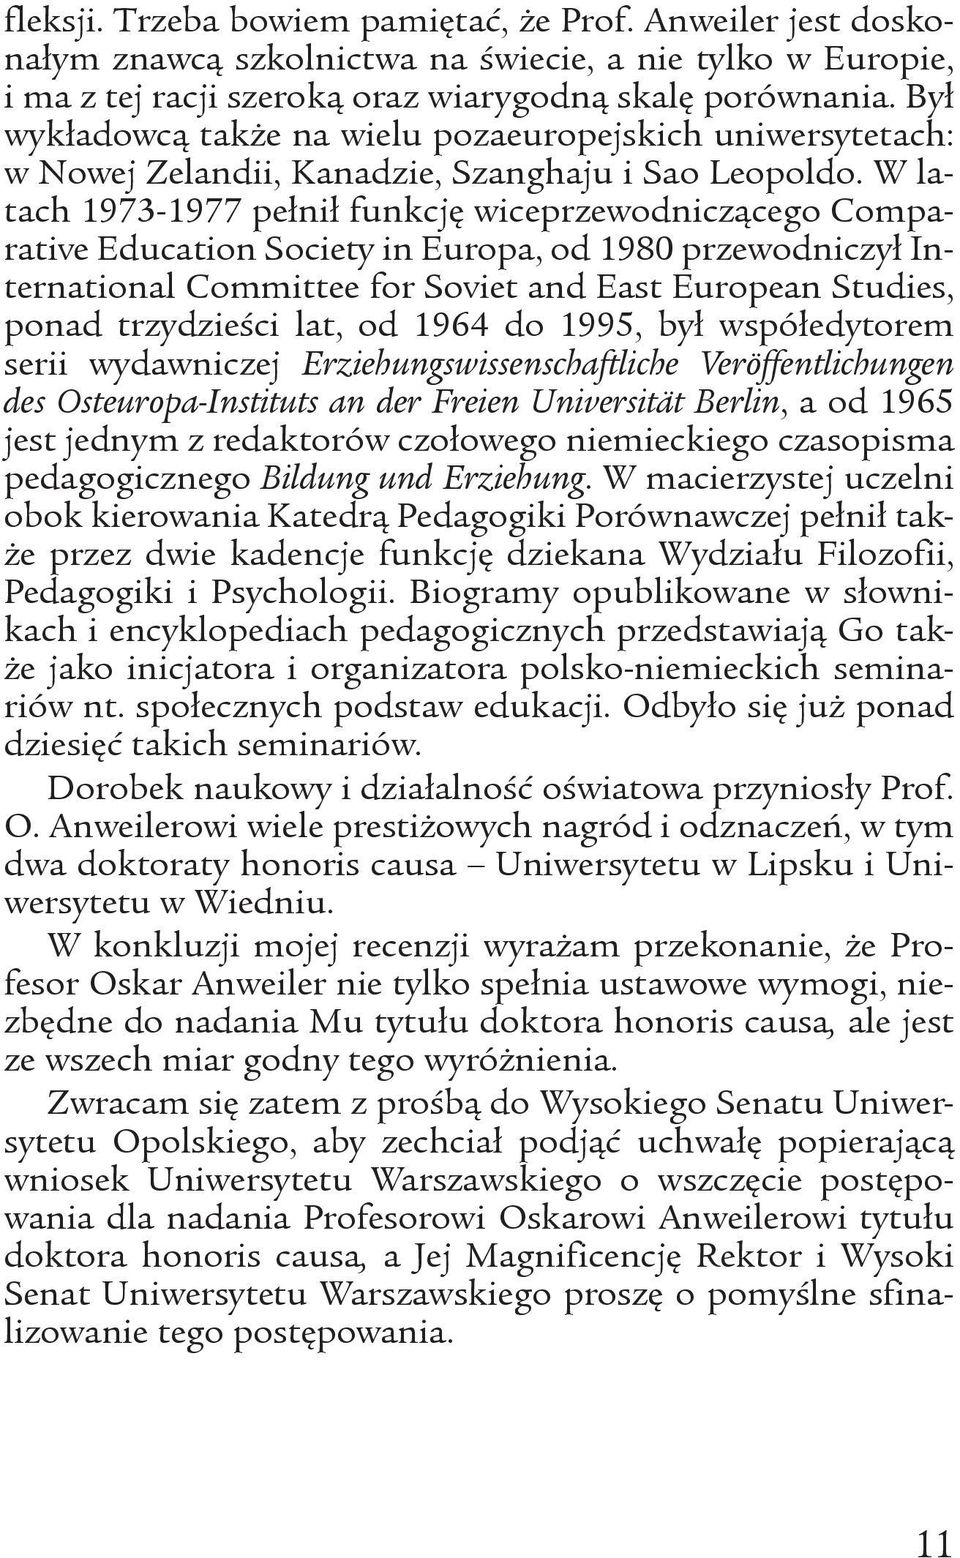 W latach 1973-1977 pełnił funkcję wiceprzewodniczącego Comparative Education Society in Europa, od 1980 przewodniczył International Committee for Soviet and East European Studies, ponad trzydzieœci